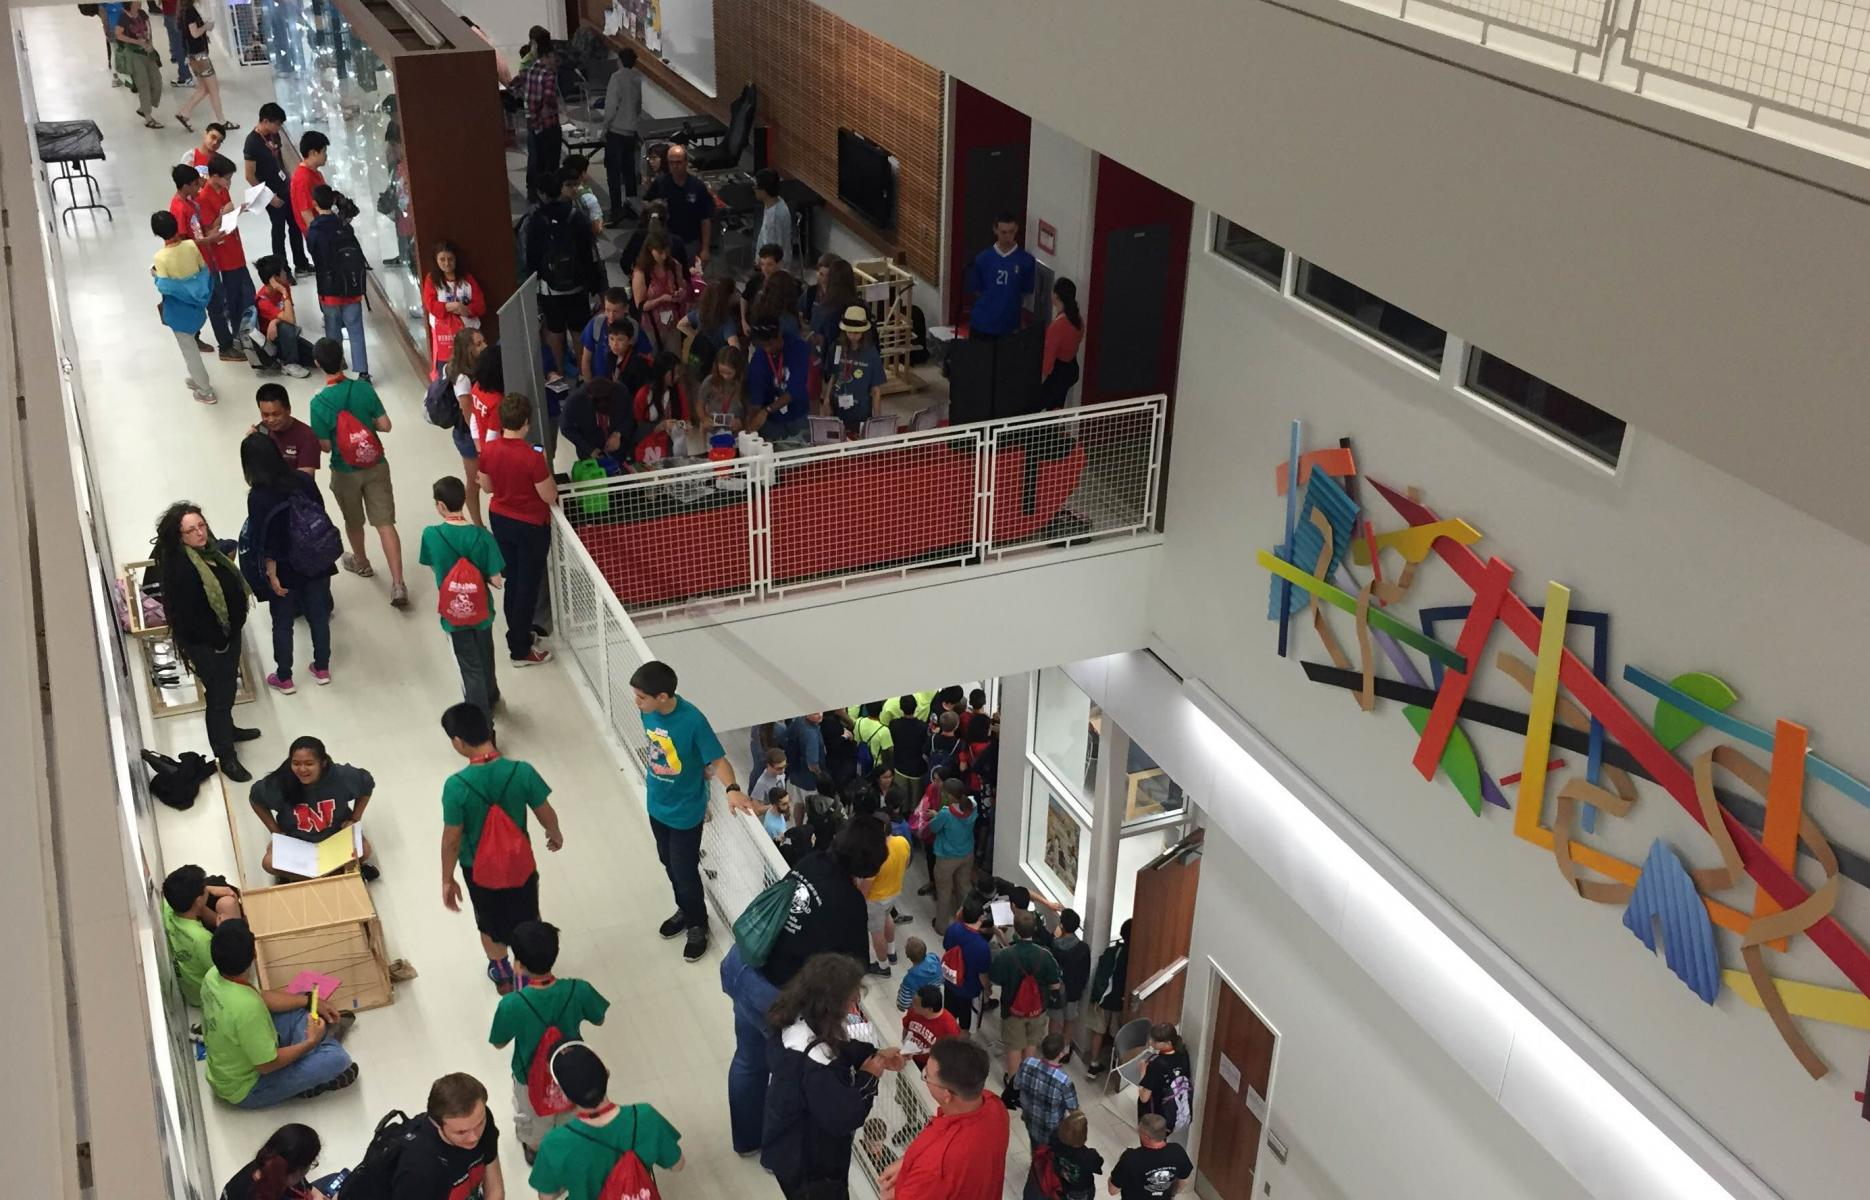 Jorgensen Hall hosts national Science Olympiad events